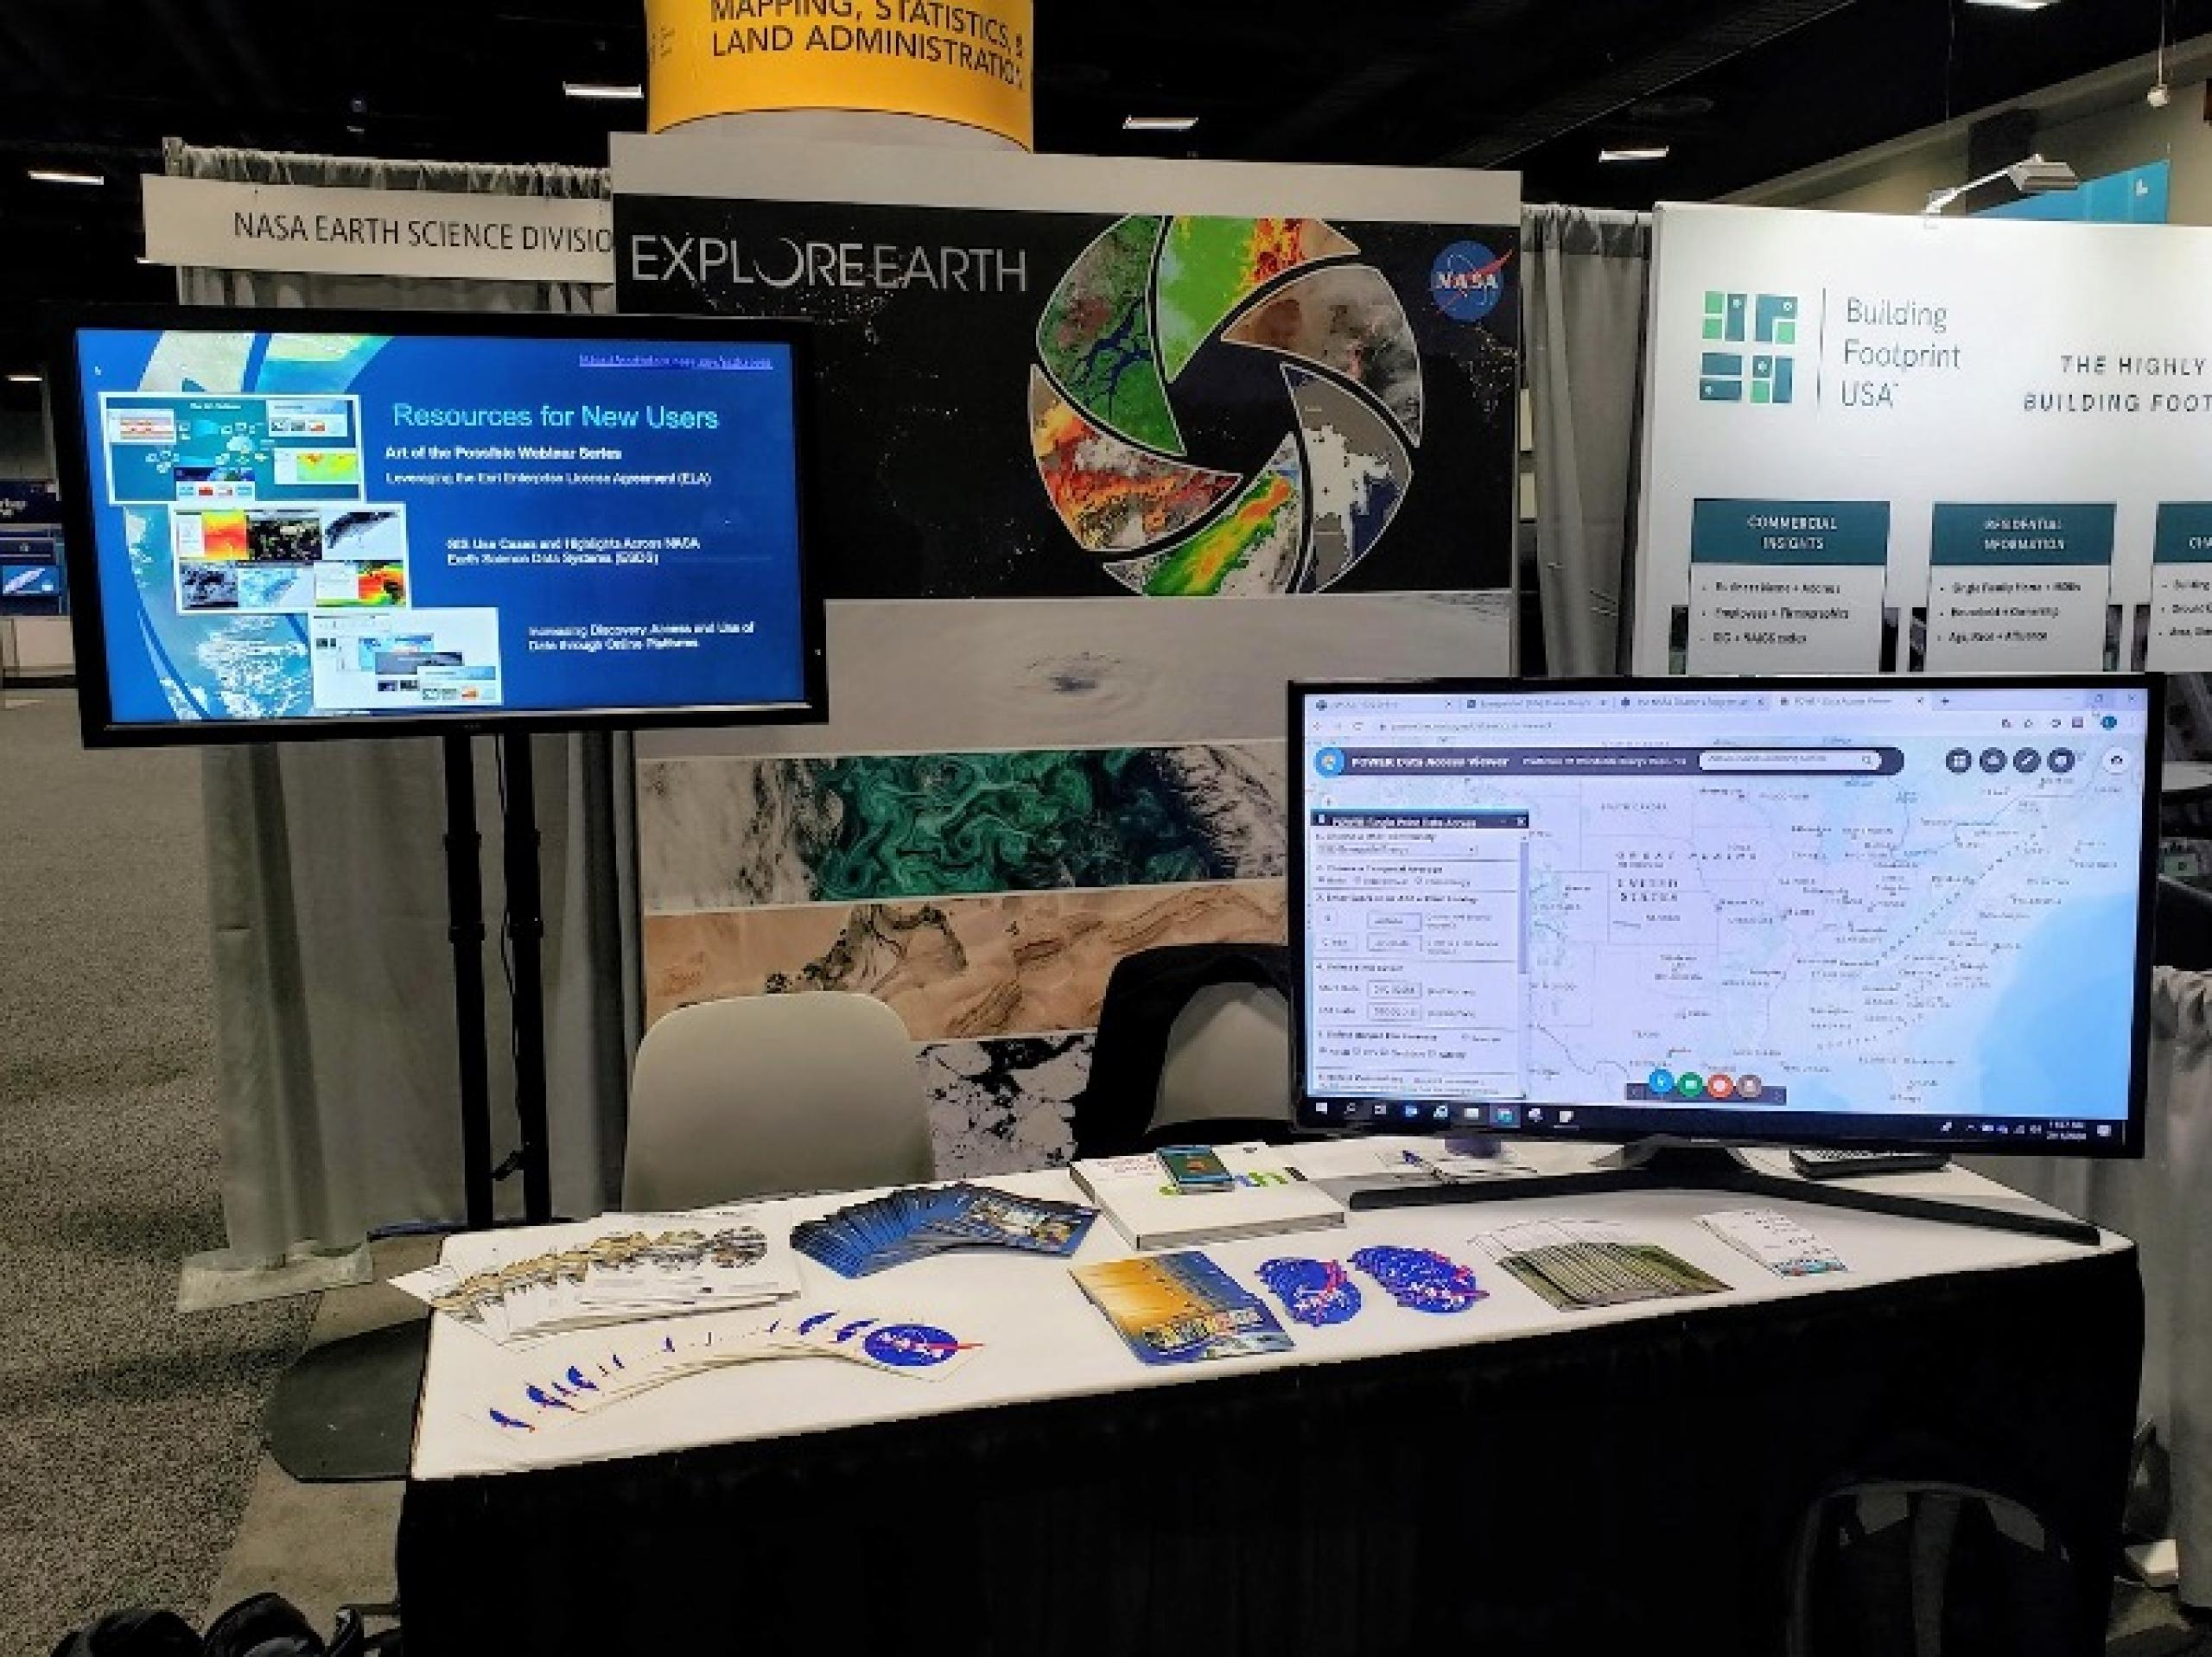 The NASA booth ready to go at the Esri Fed GIS conference in Washington DC, February 2020. Credit: NASA